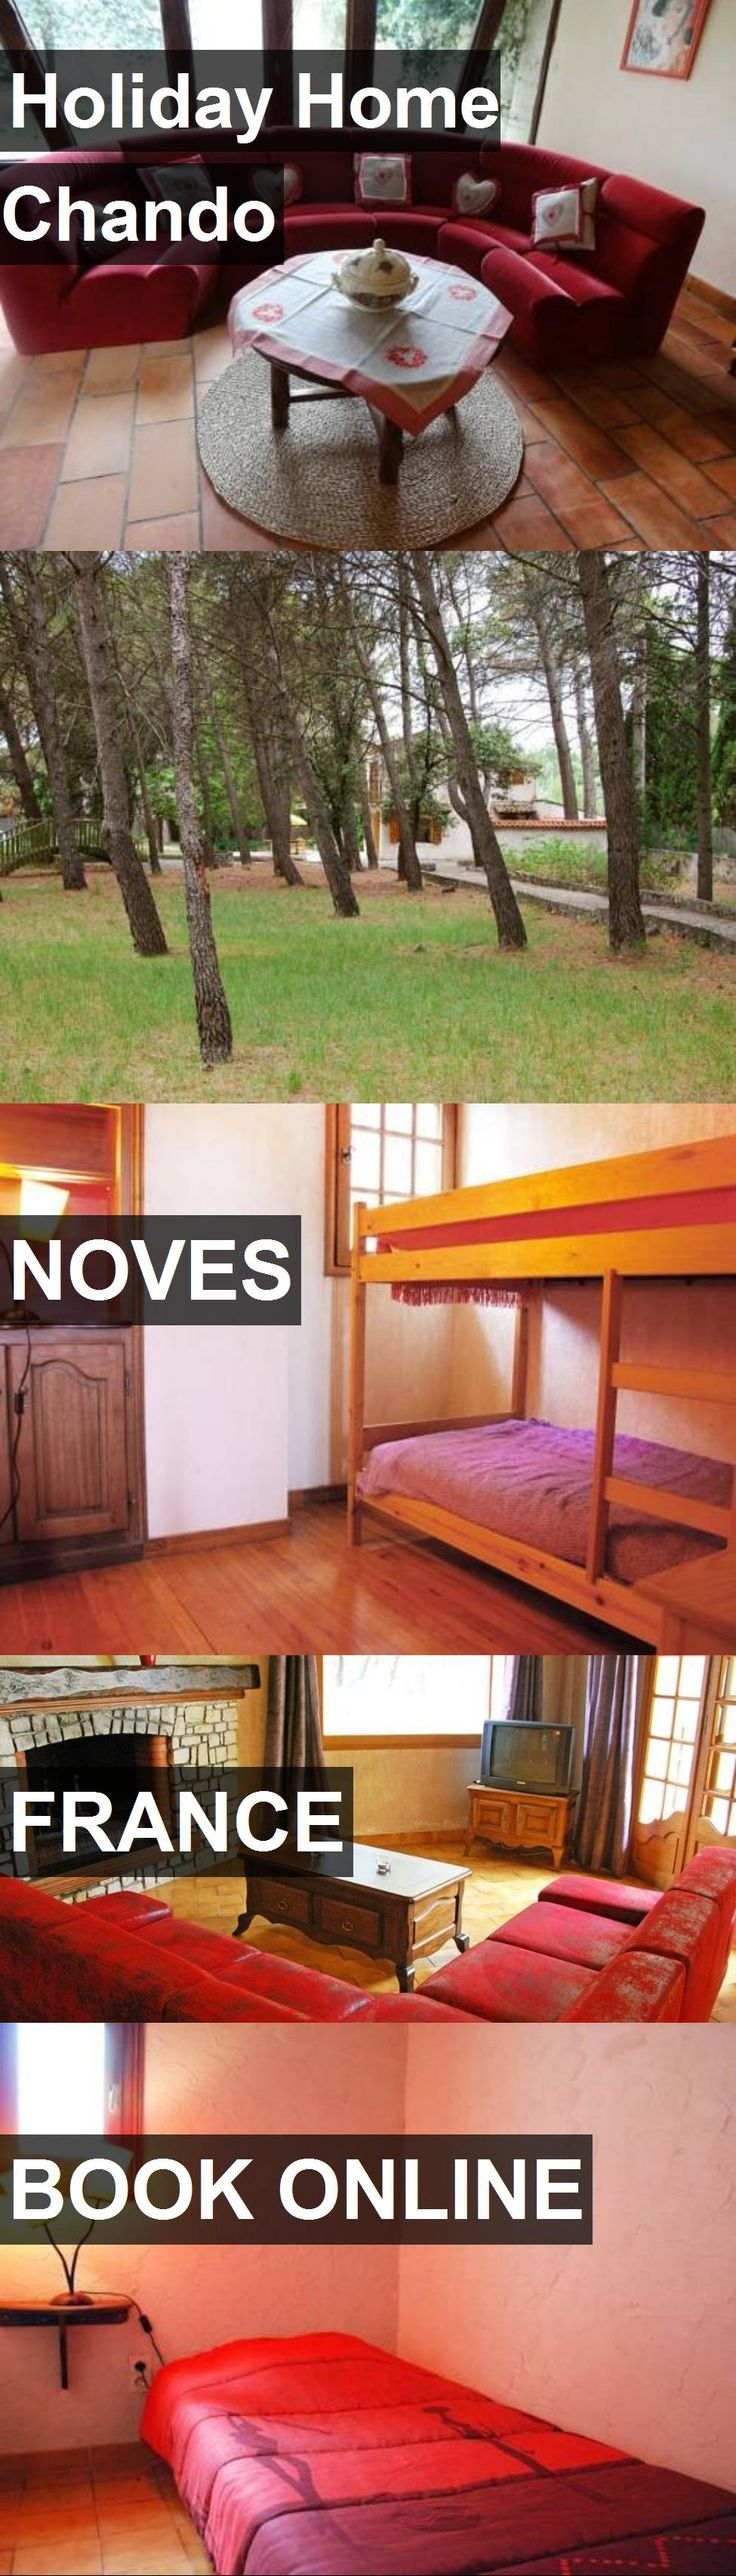 Hotel Holiday Home Chando in Noves, France. For more information, photos, reviews and best prices please follow the link. #France #Noves #travel #vacation #hotel